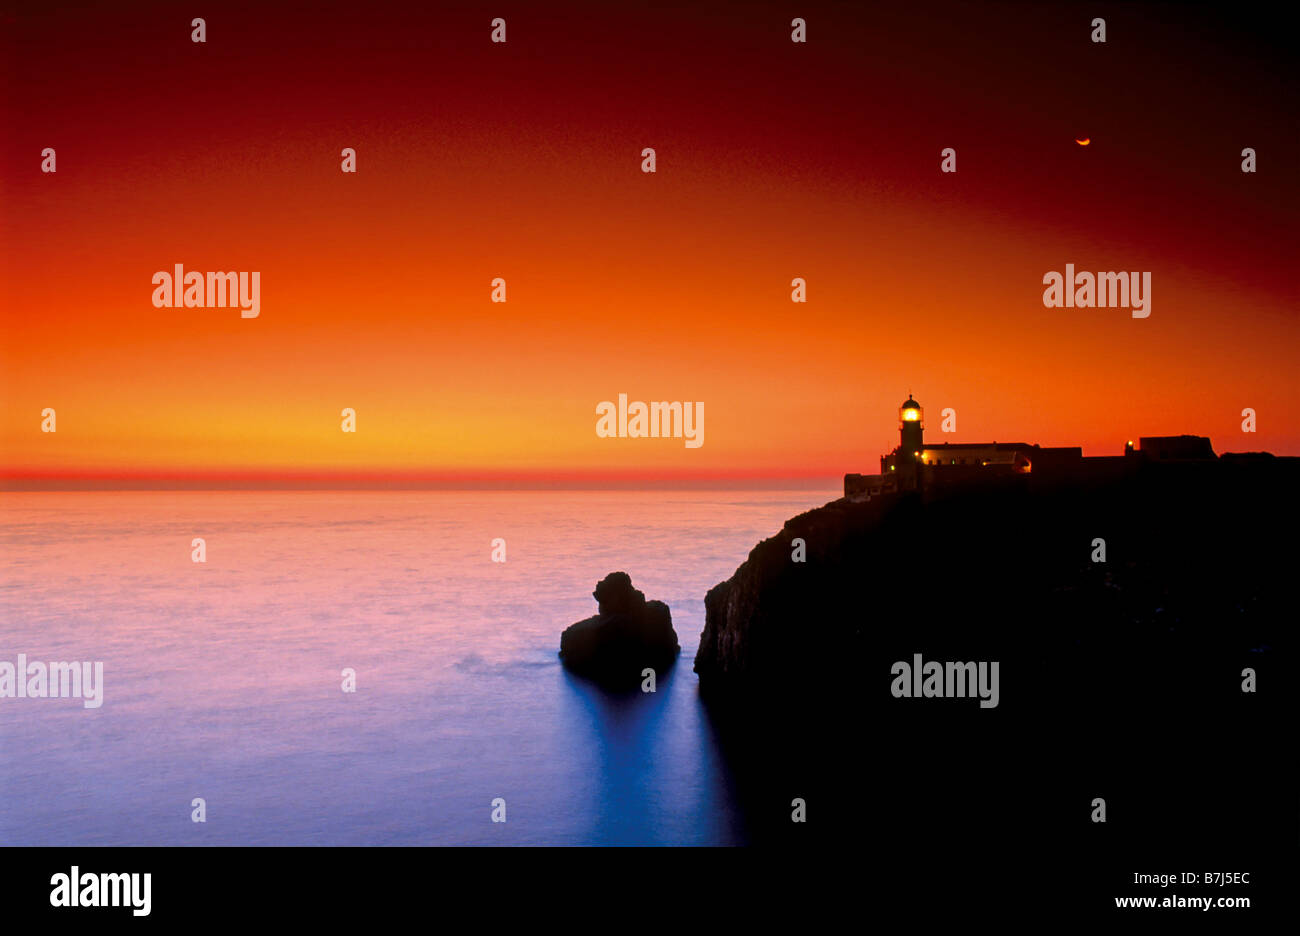 Sundown at Cape Saint Vincent, Natural Park Costa Vicentina, Algarve, Portugal Stock Photo